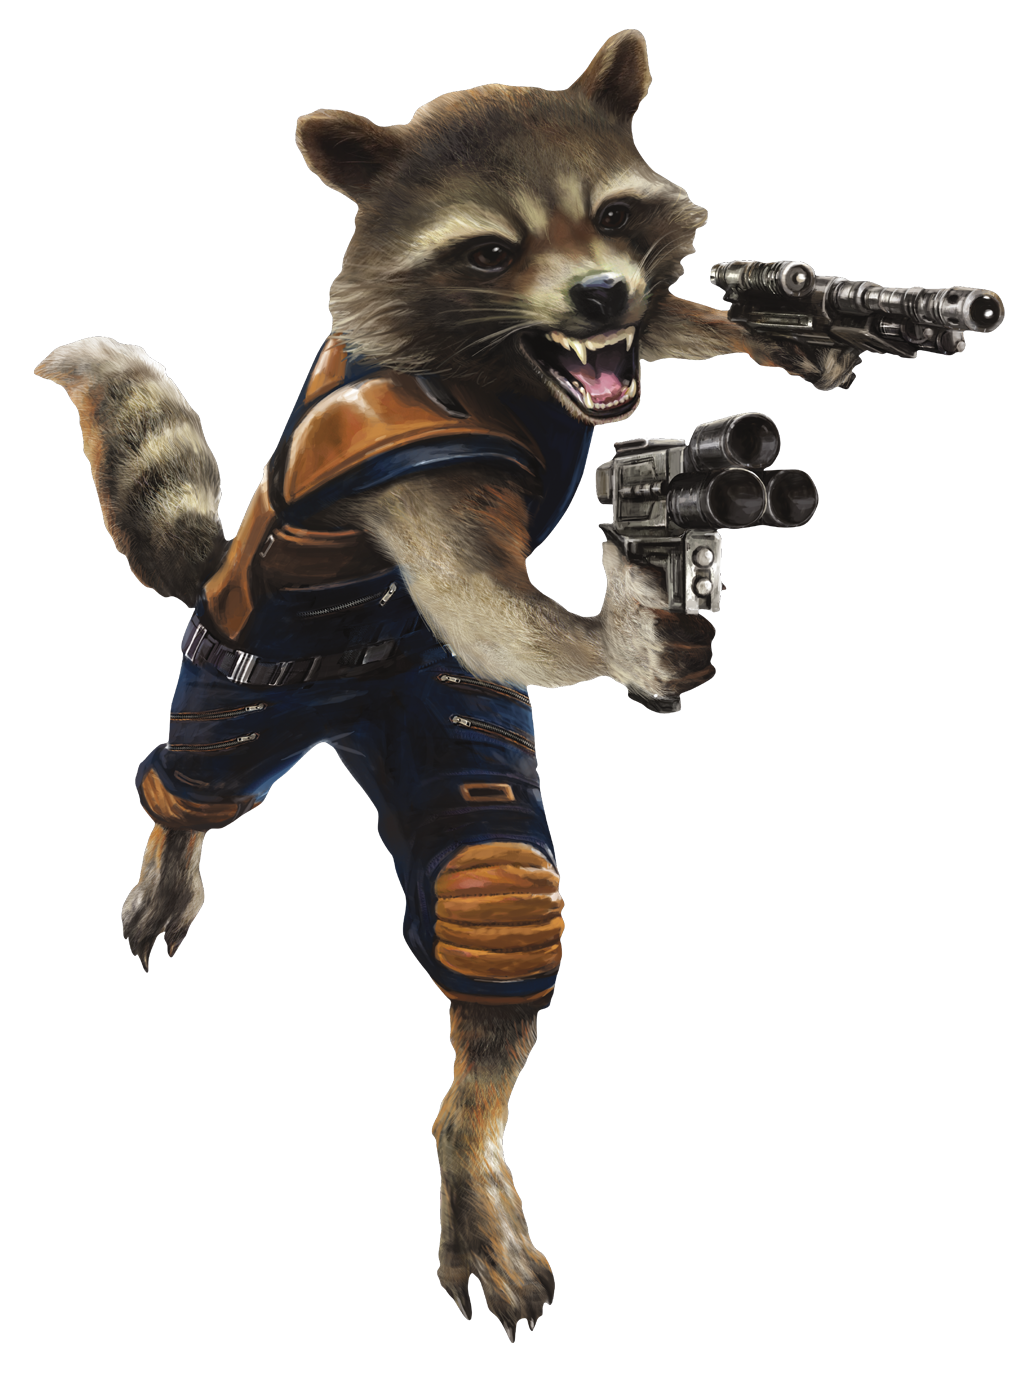 Rocket Character Fictional Snout Starlord Raccoon Thanos PNG Image